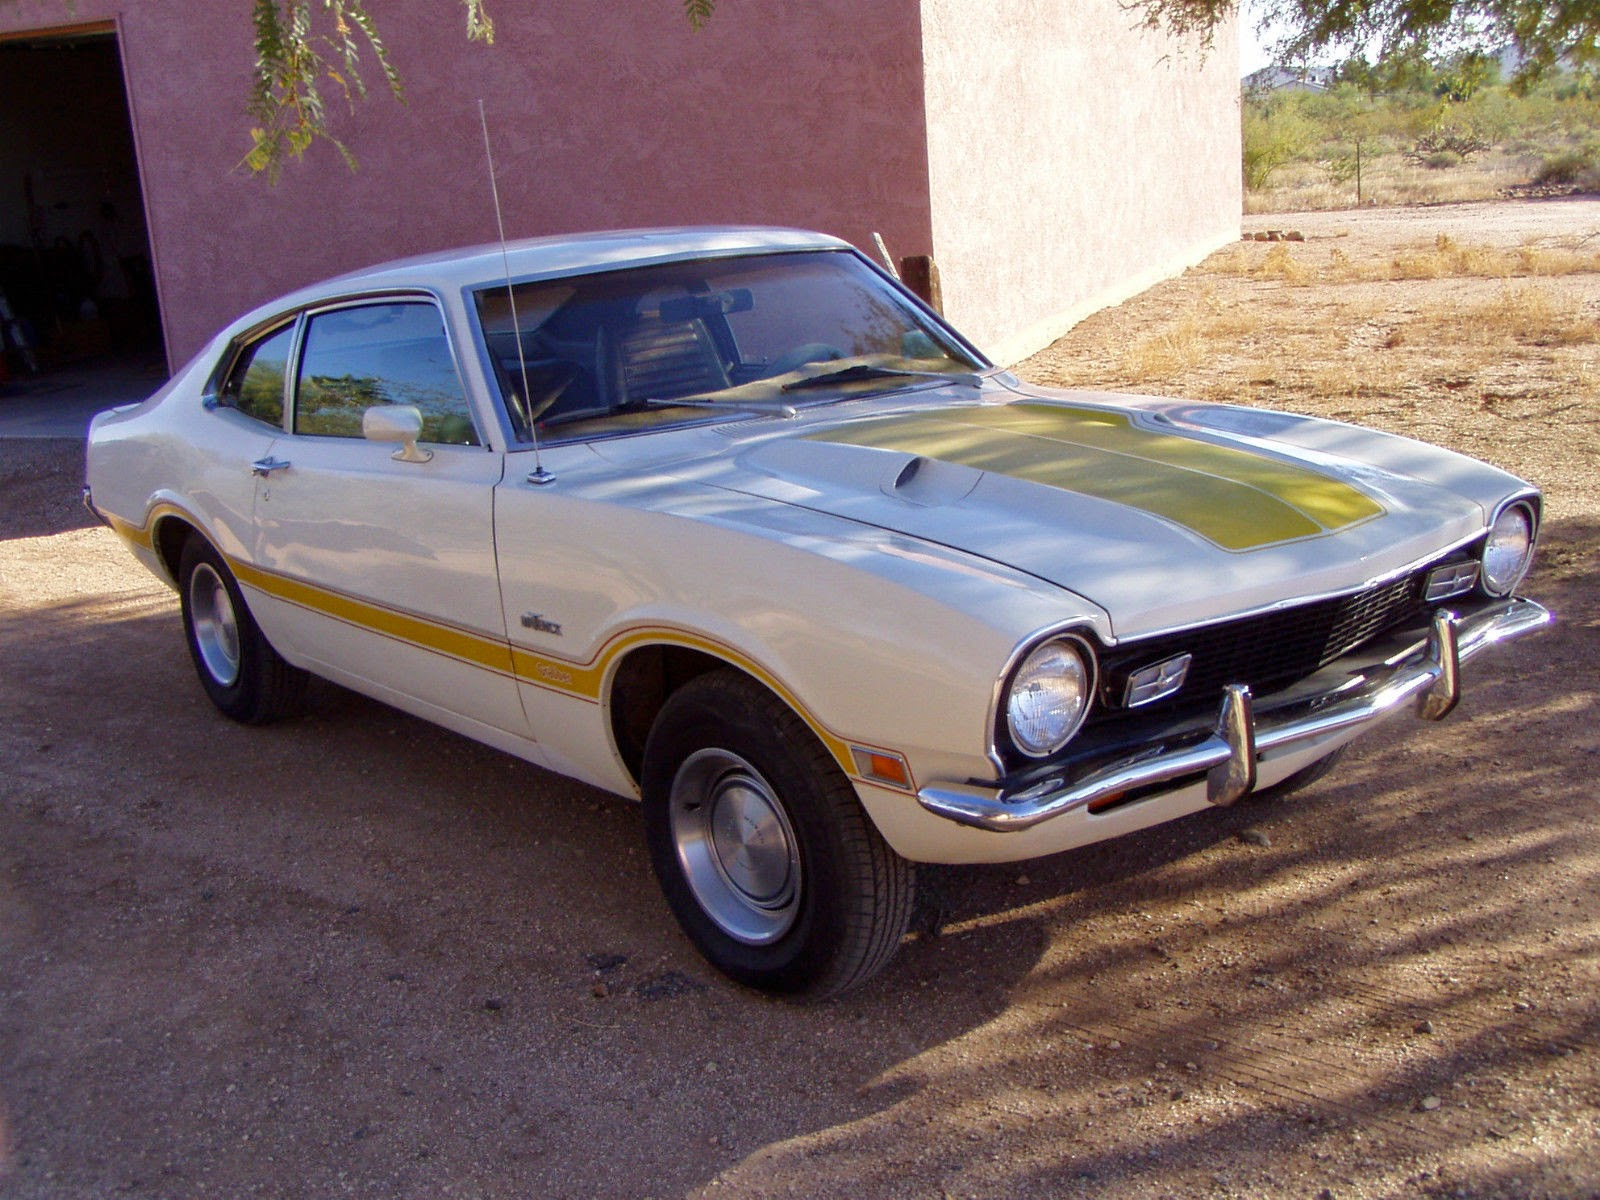 Daily turismo 5k grabber option 1972 ford maverick